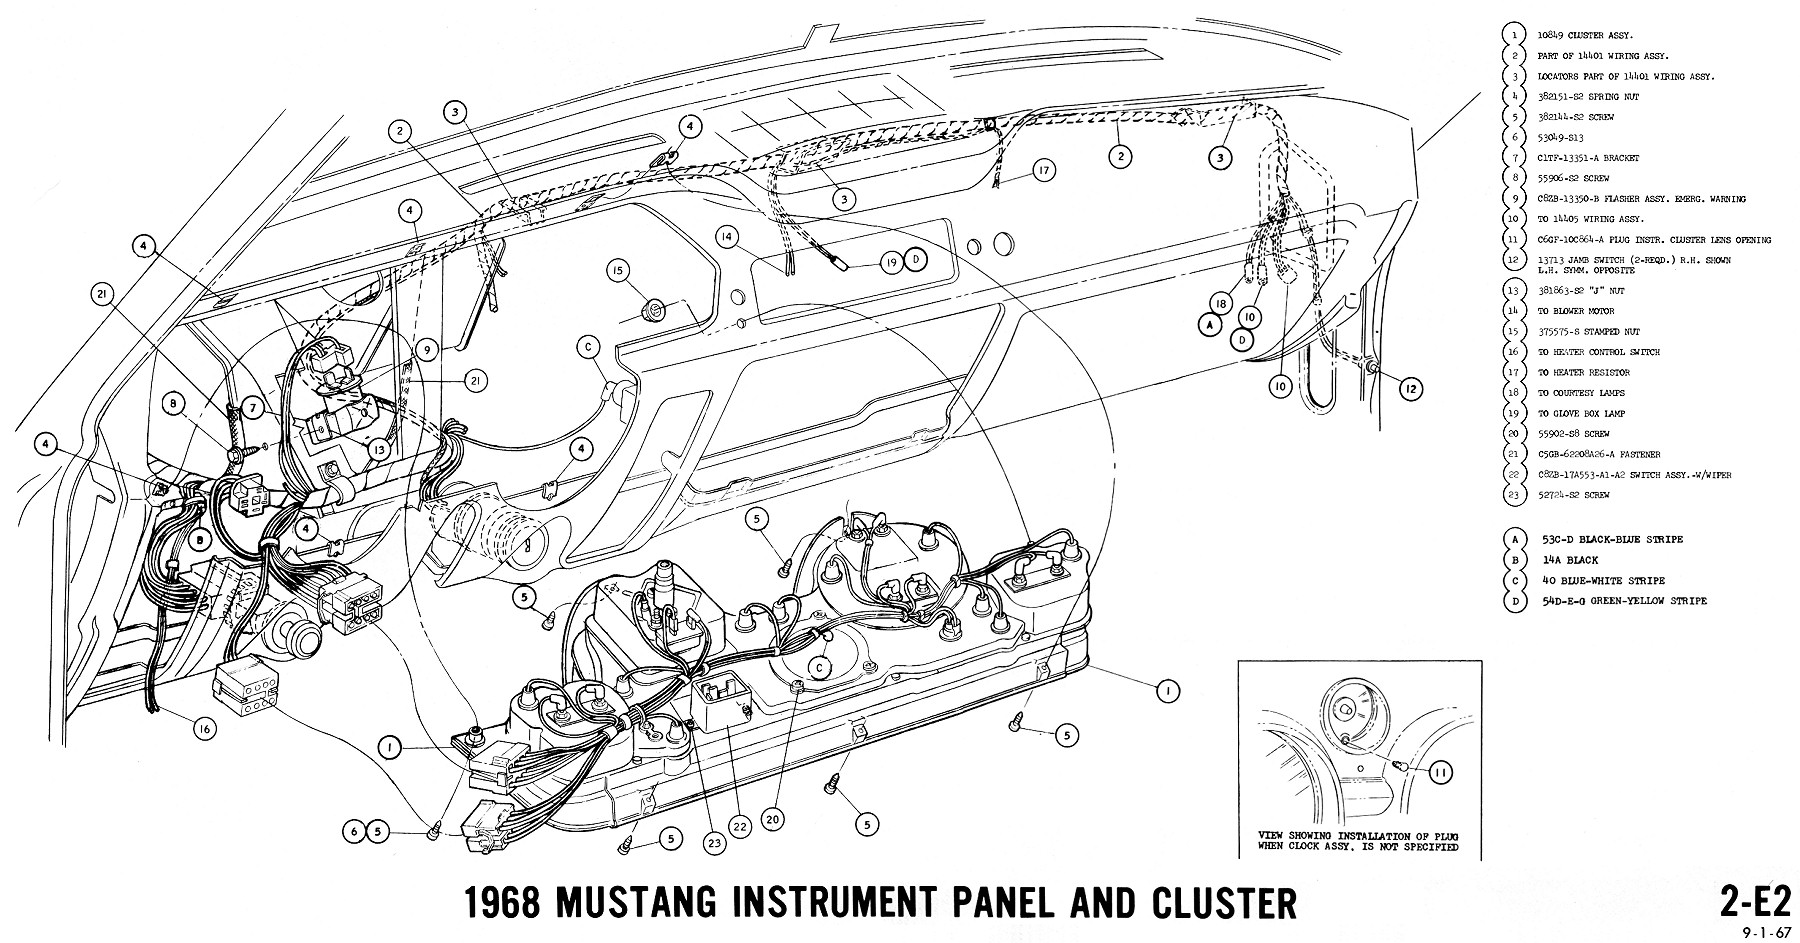 1968 mustang wiring diagram instruments 2 1968 mustang wiring diagrams and vacuum schematics average joe 1970 mustang wire harness at virtualis.co